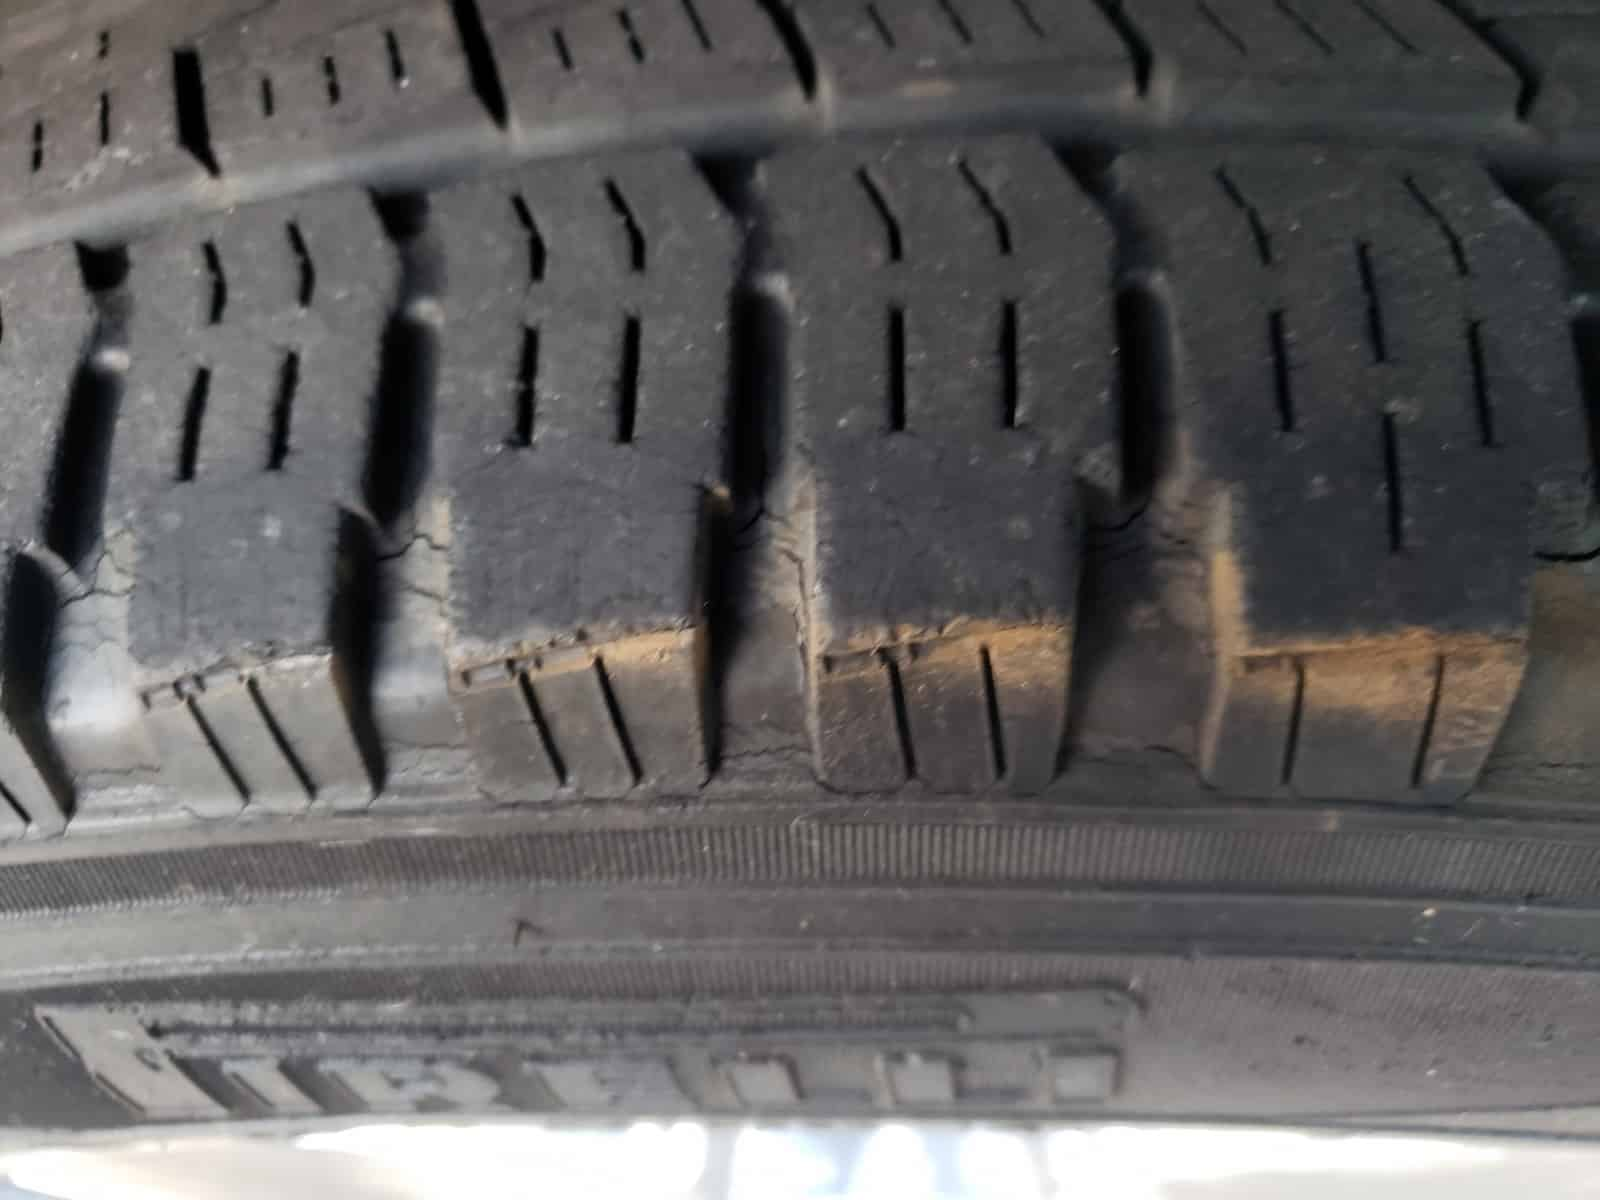 Pirelli Tire Cracking